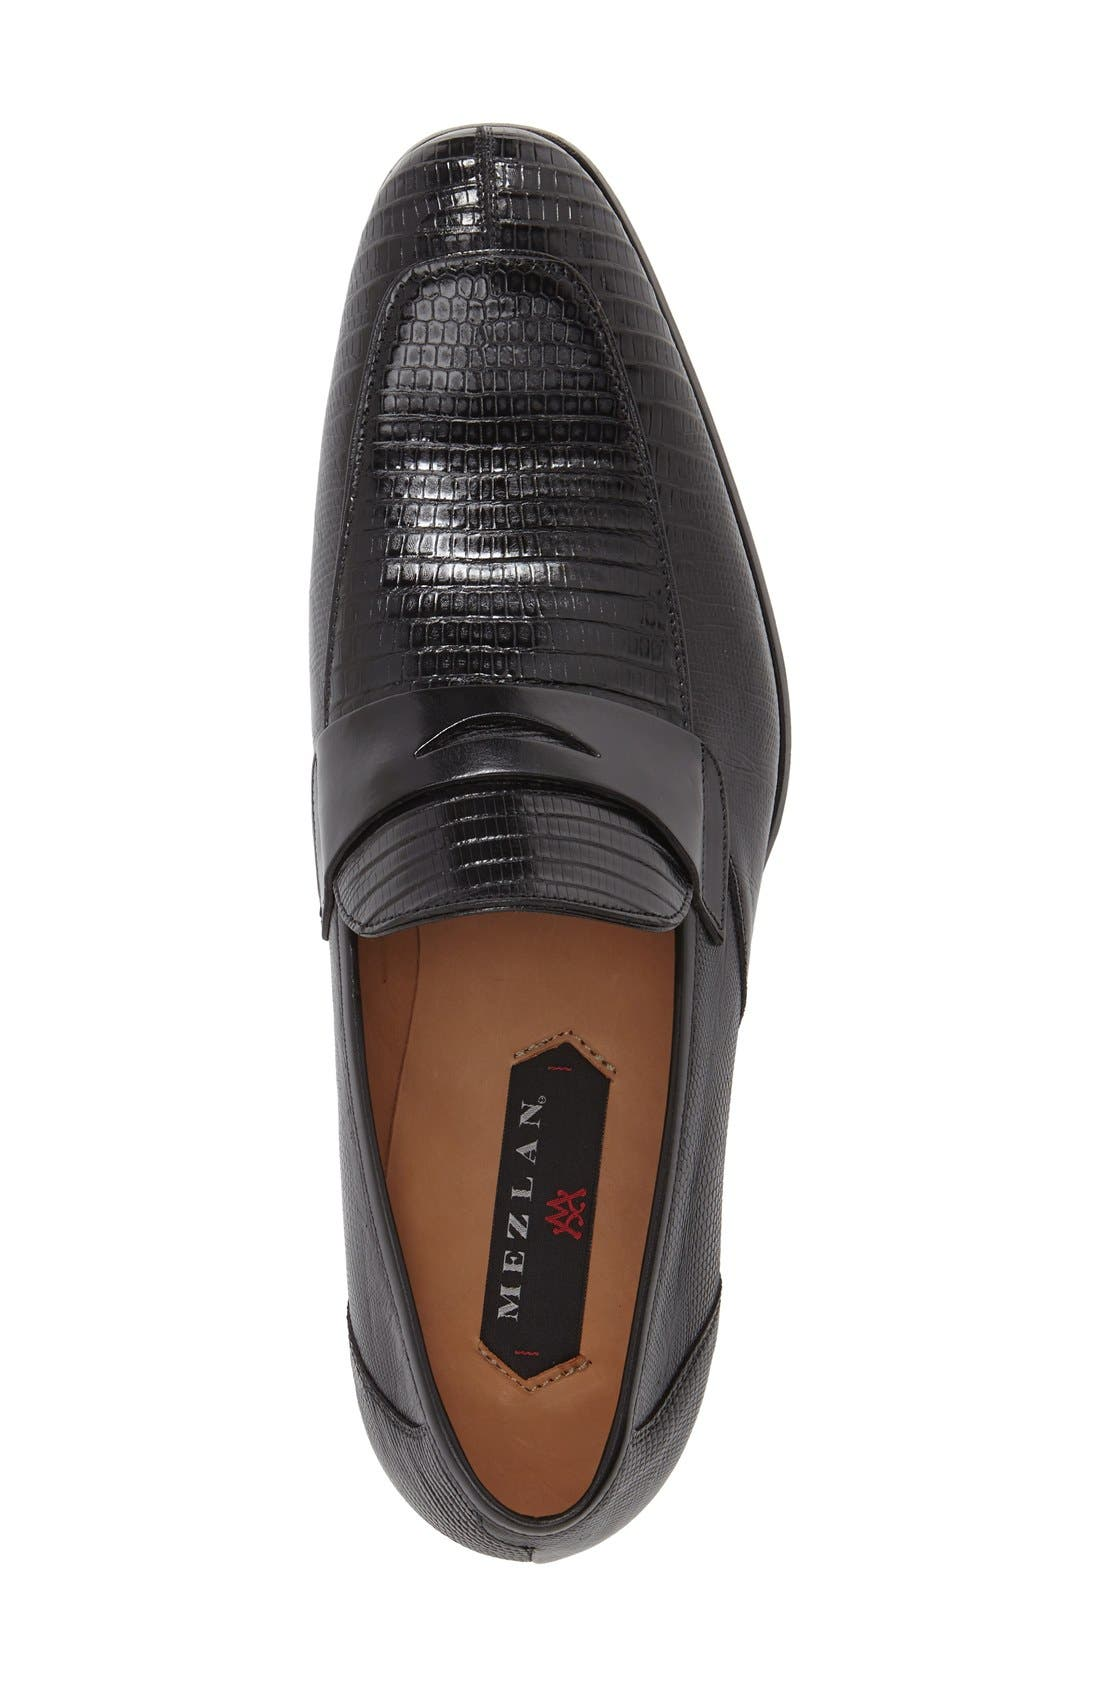 Alternate Image 3  - Mezlan 'Lipari' Lizard Leather Penny Loafer (Men)